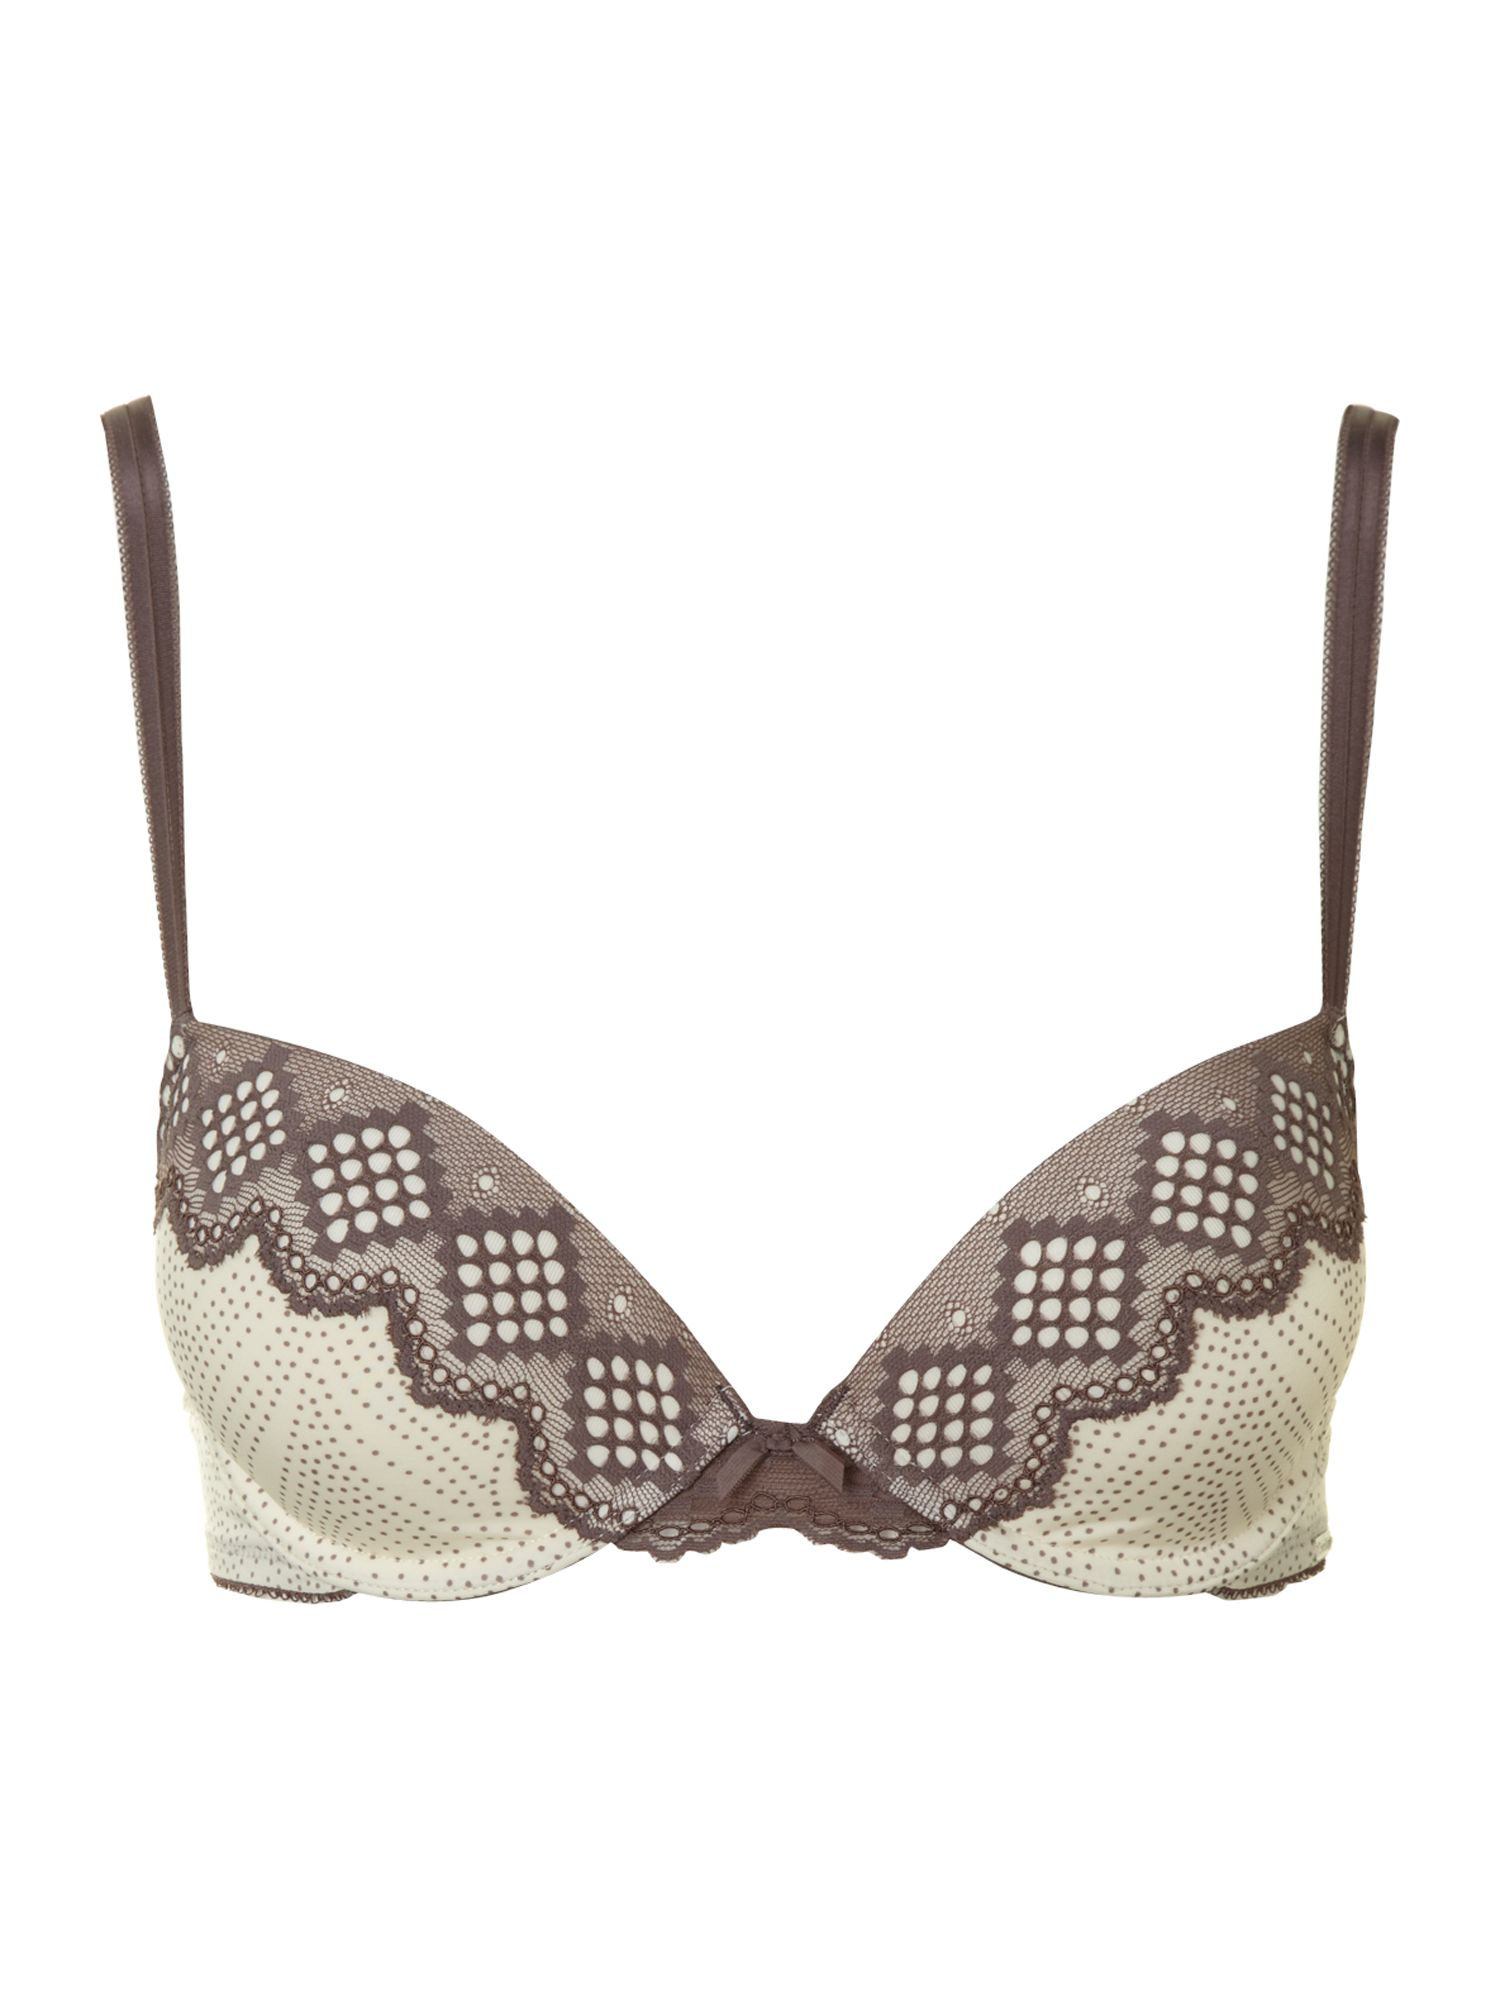 Cakewalk push up bra